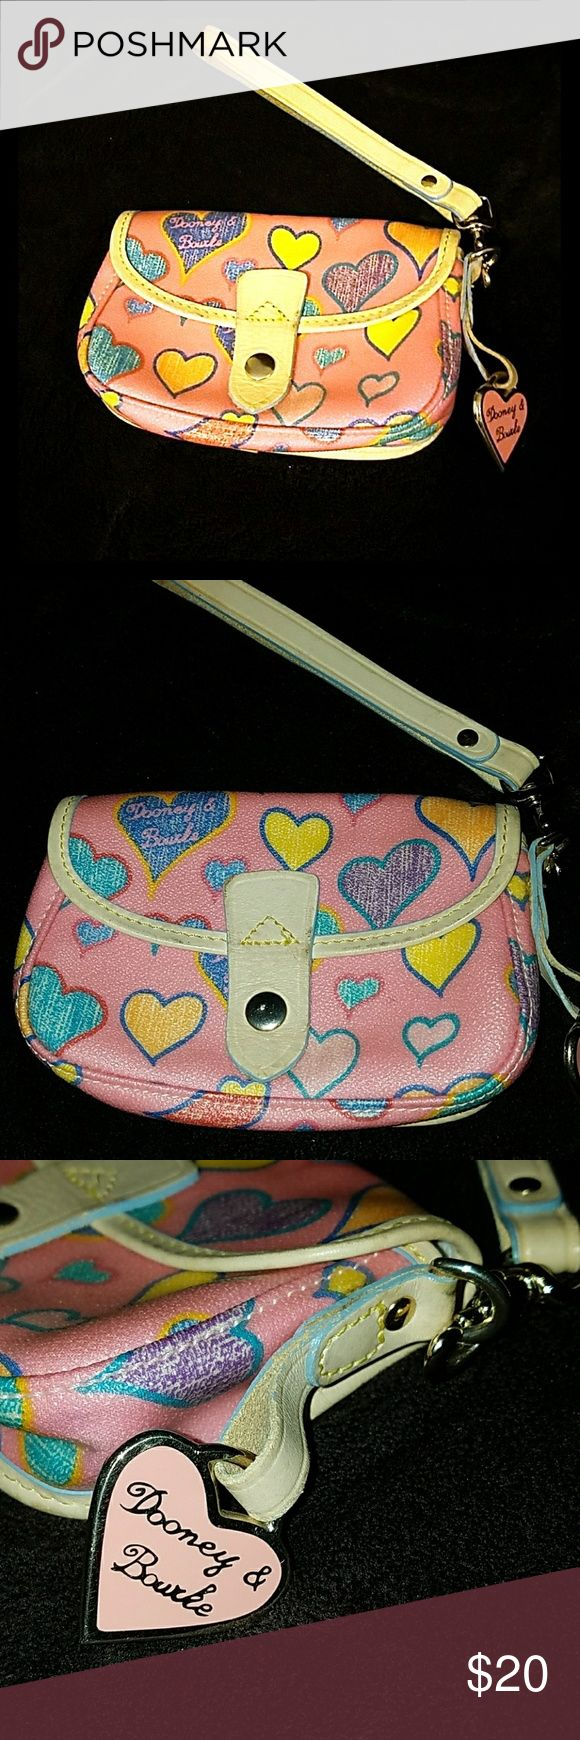 Dooney & Bourke pink heart wristlet Authentic dooney & bourke. Super adorable pink with colorful heart pattern wristlet. Pink and gold heart key chain on side. Leather strap. Clean inside. Used but in great condition. Snap dront closure. Bundle and save. Offers always welcomed. Pet free smoke free home. See pics for details 🤗 Dooney & Bourke Bags Clutches & Wristlets